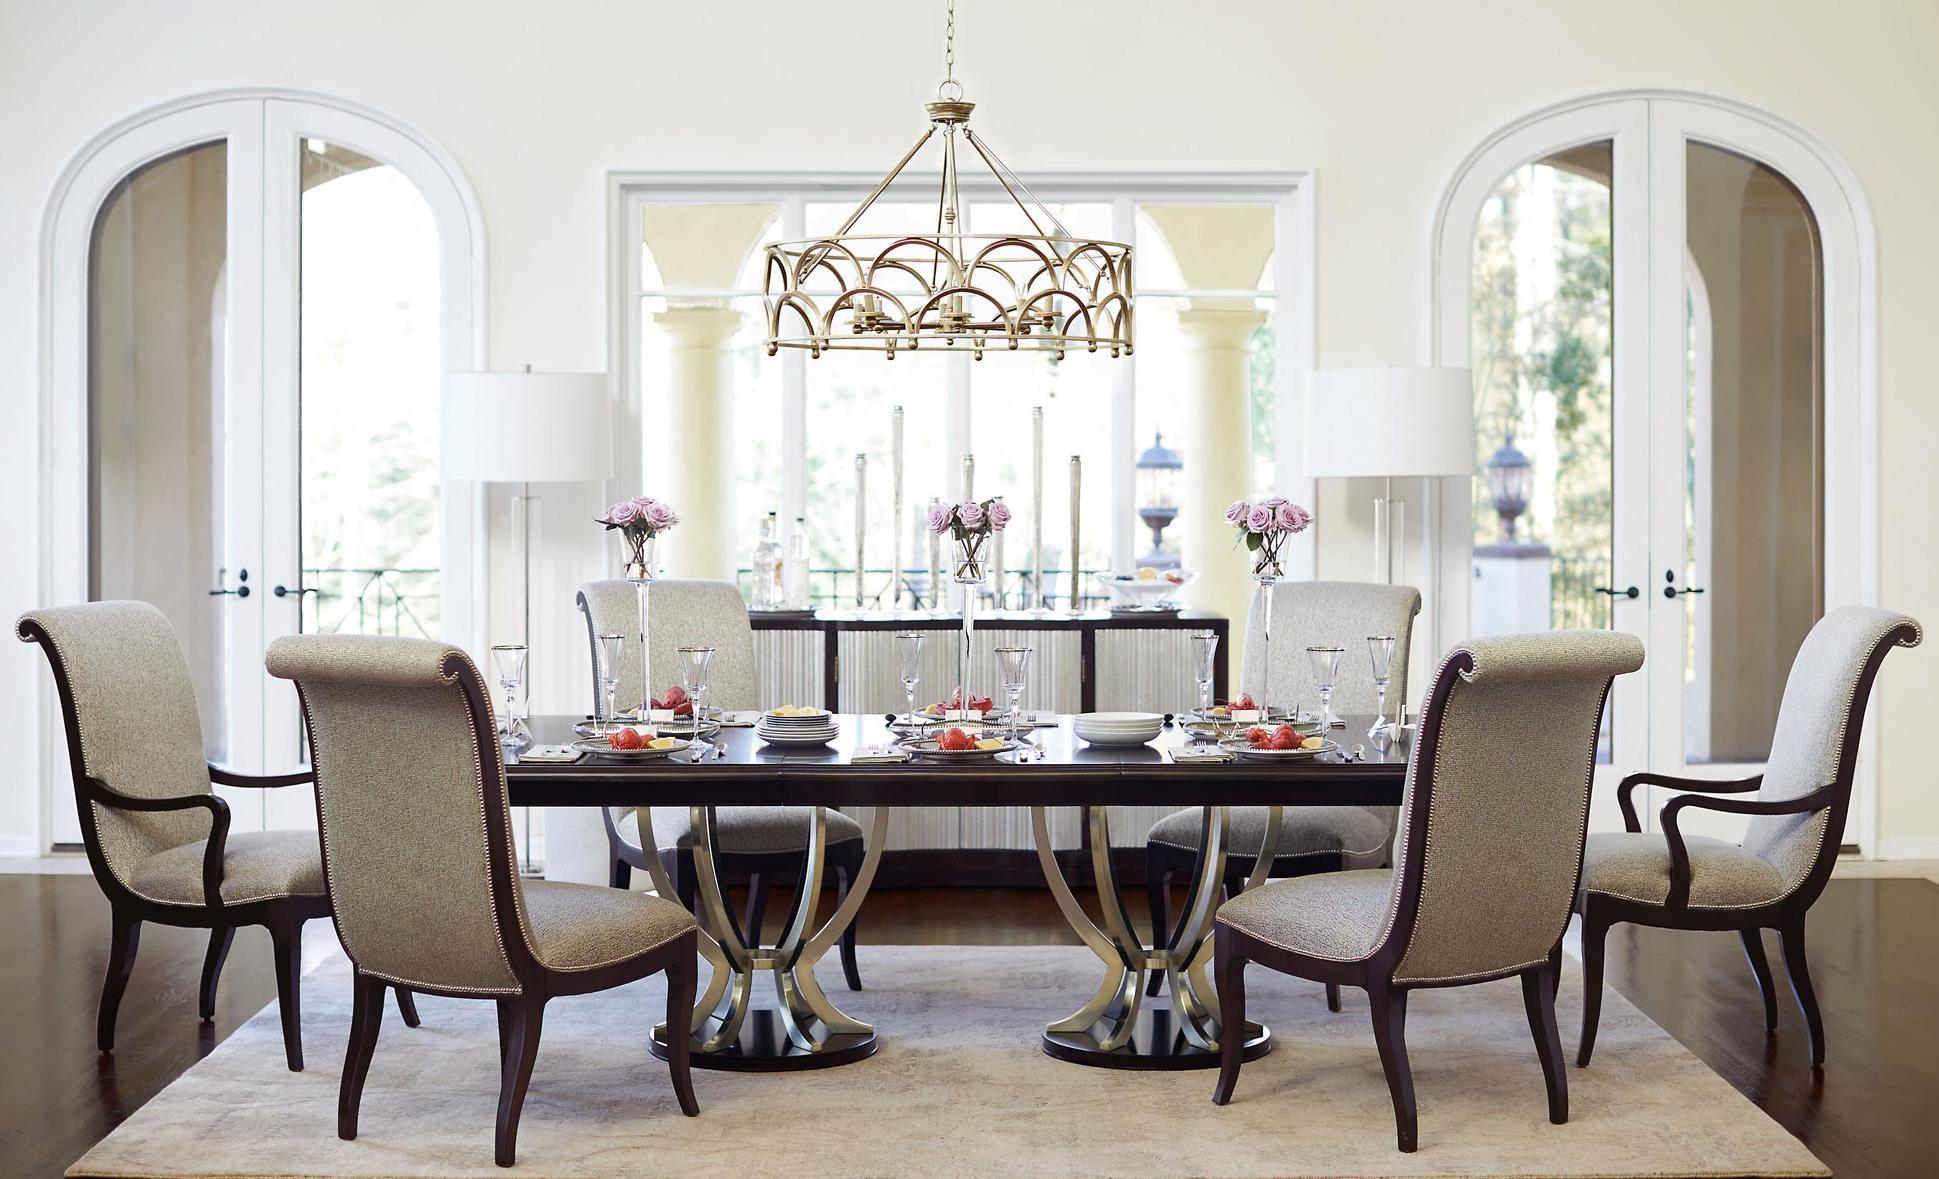 Bernhardt Miramont 9 Piece Dining Set with Double Pedestal Table